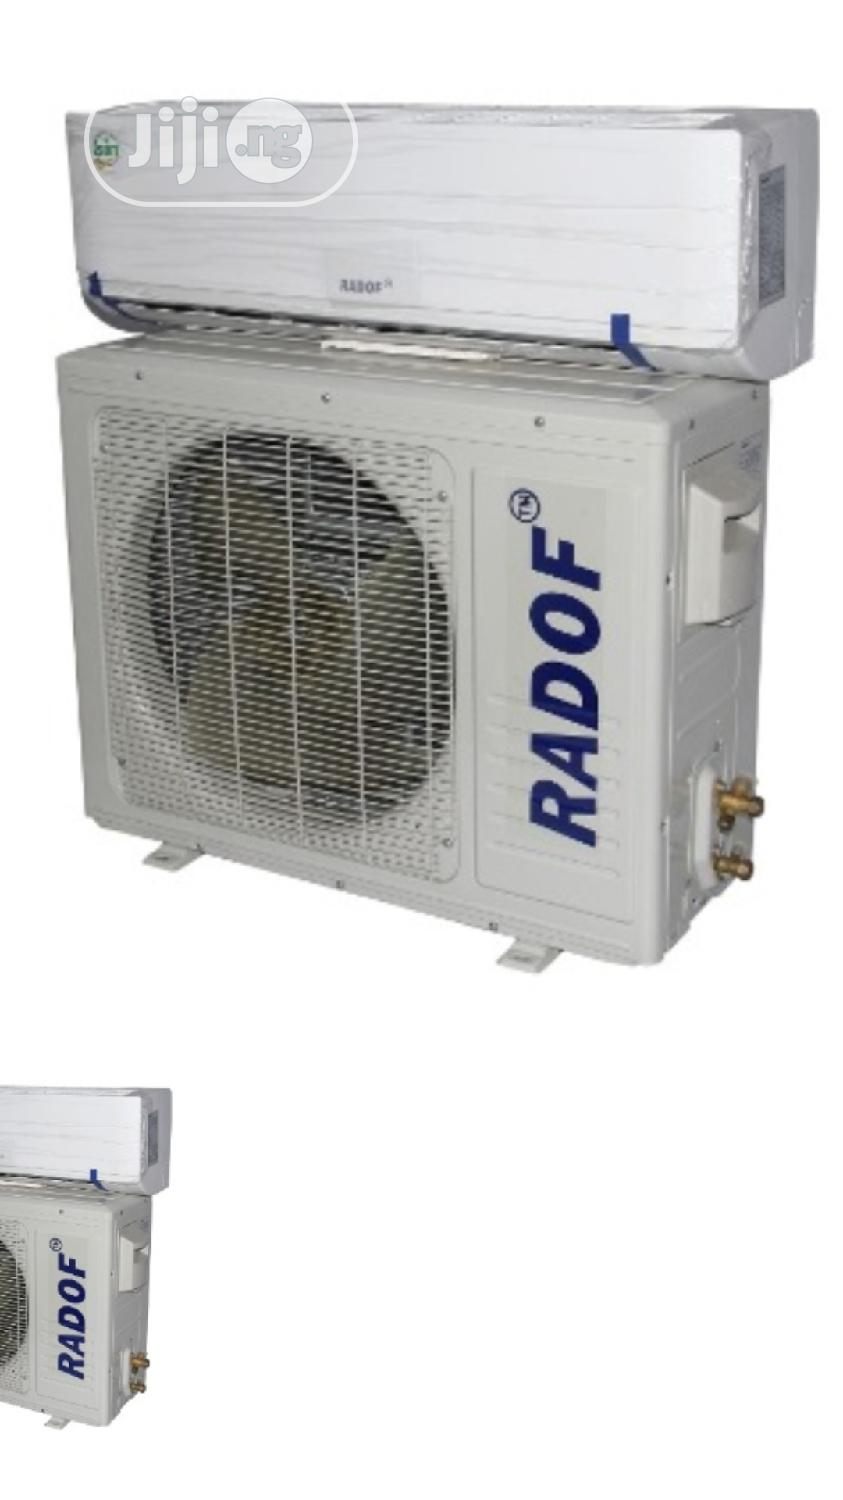 1.5HP LG Split Unit Air Conditioner   Home Appliances for sale in Ojo, Lagos State, Nigeria